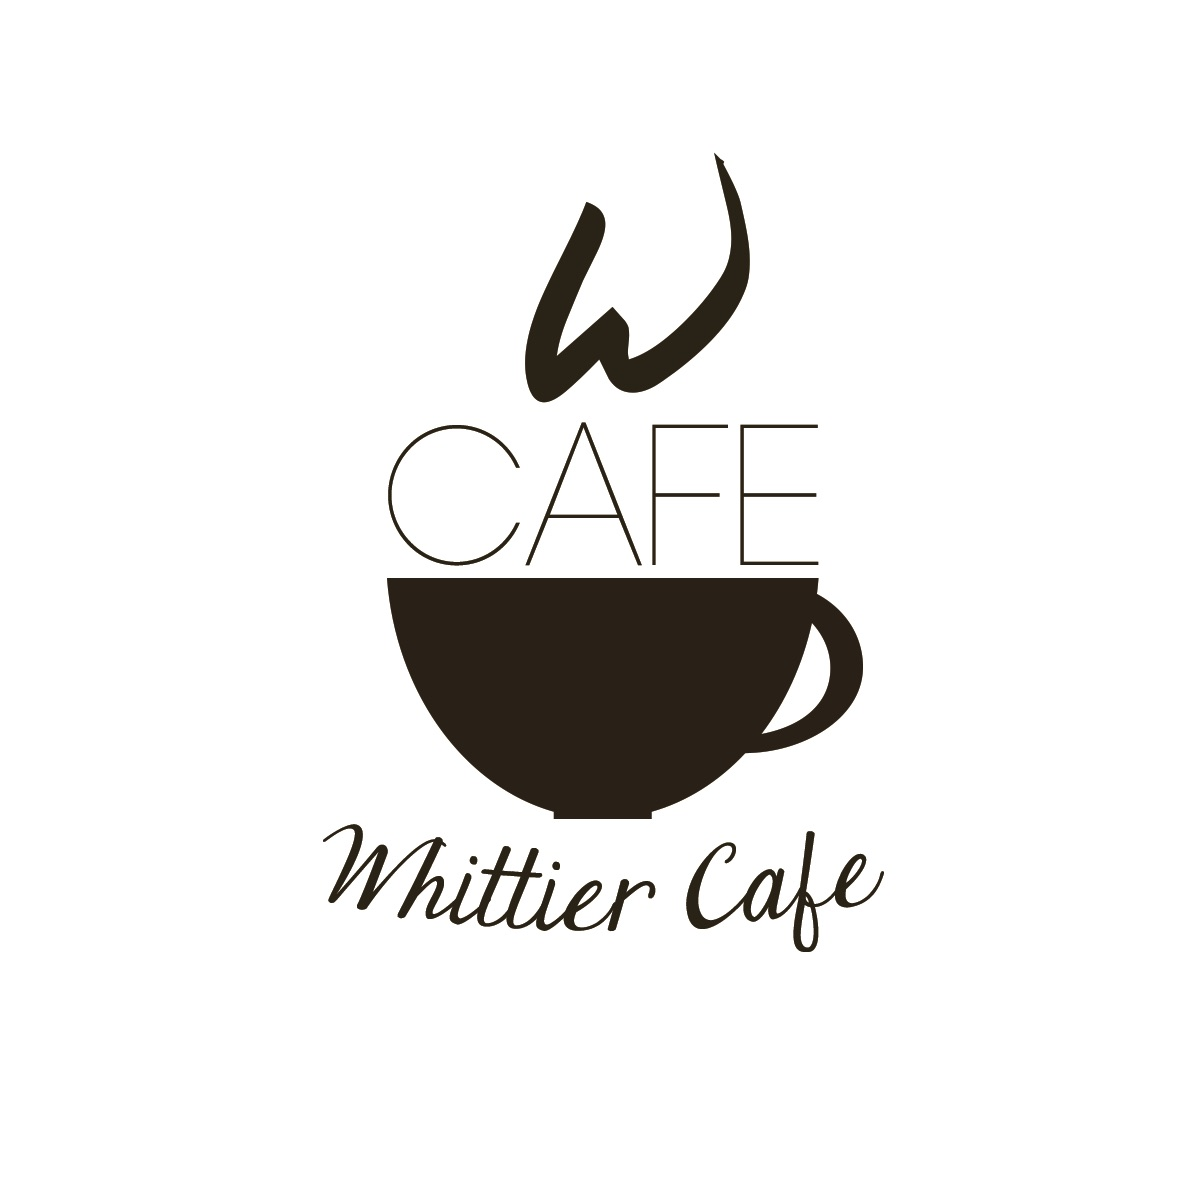 Whittier Cafe, Stain'd Arts Partner